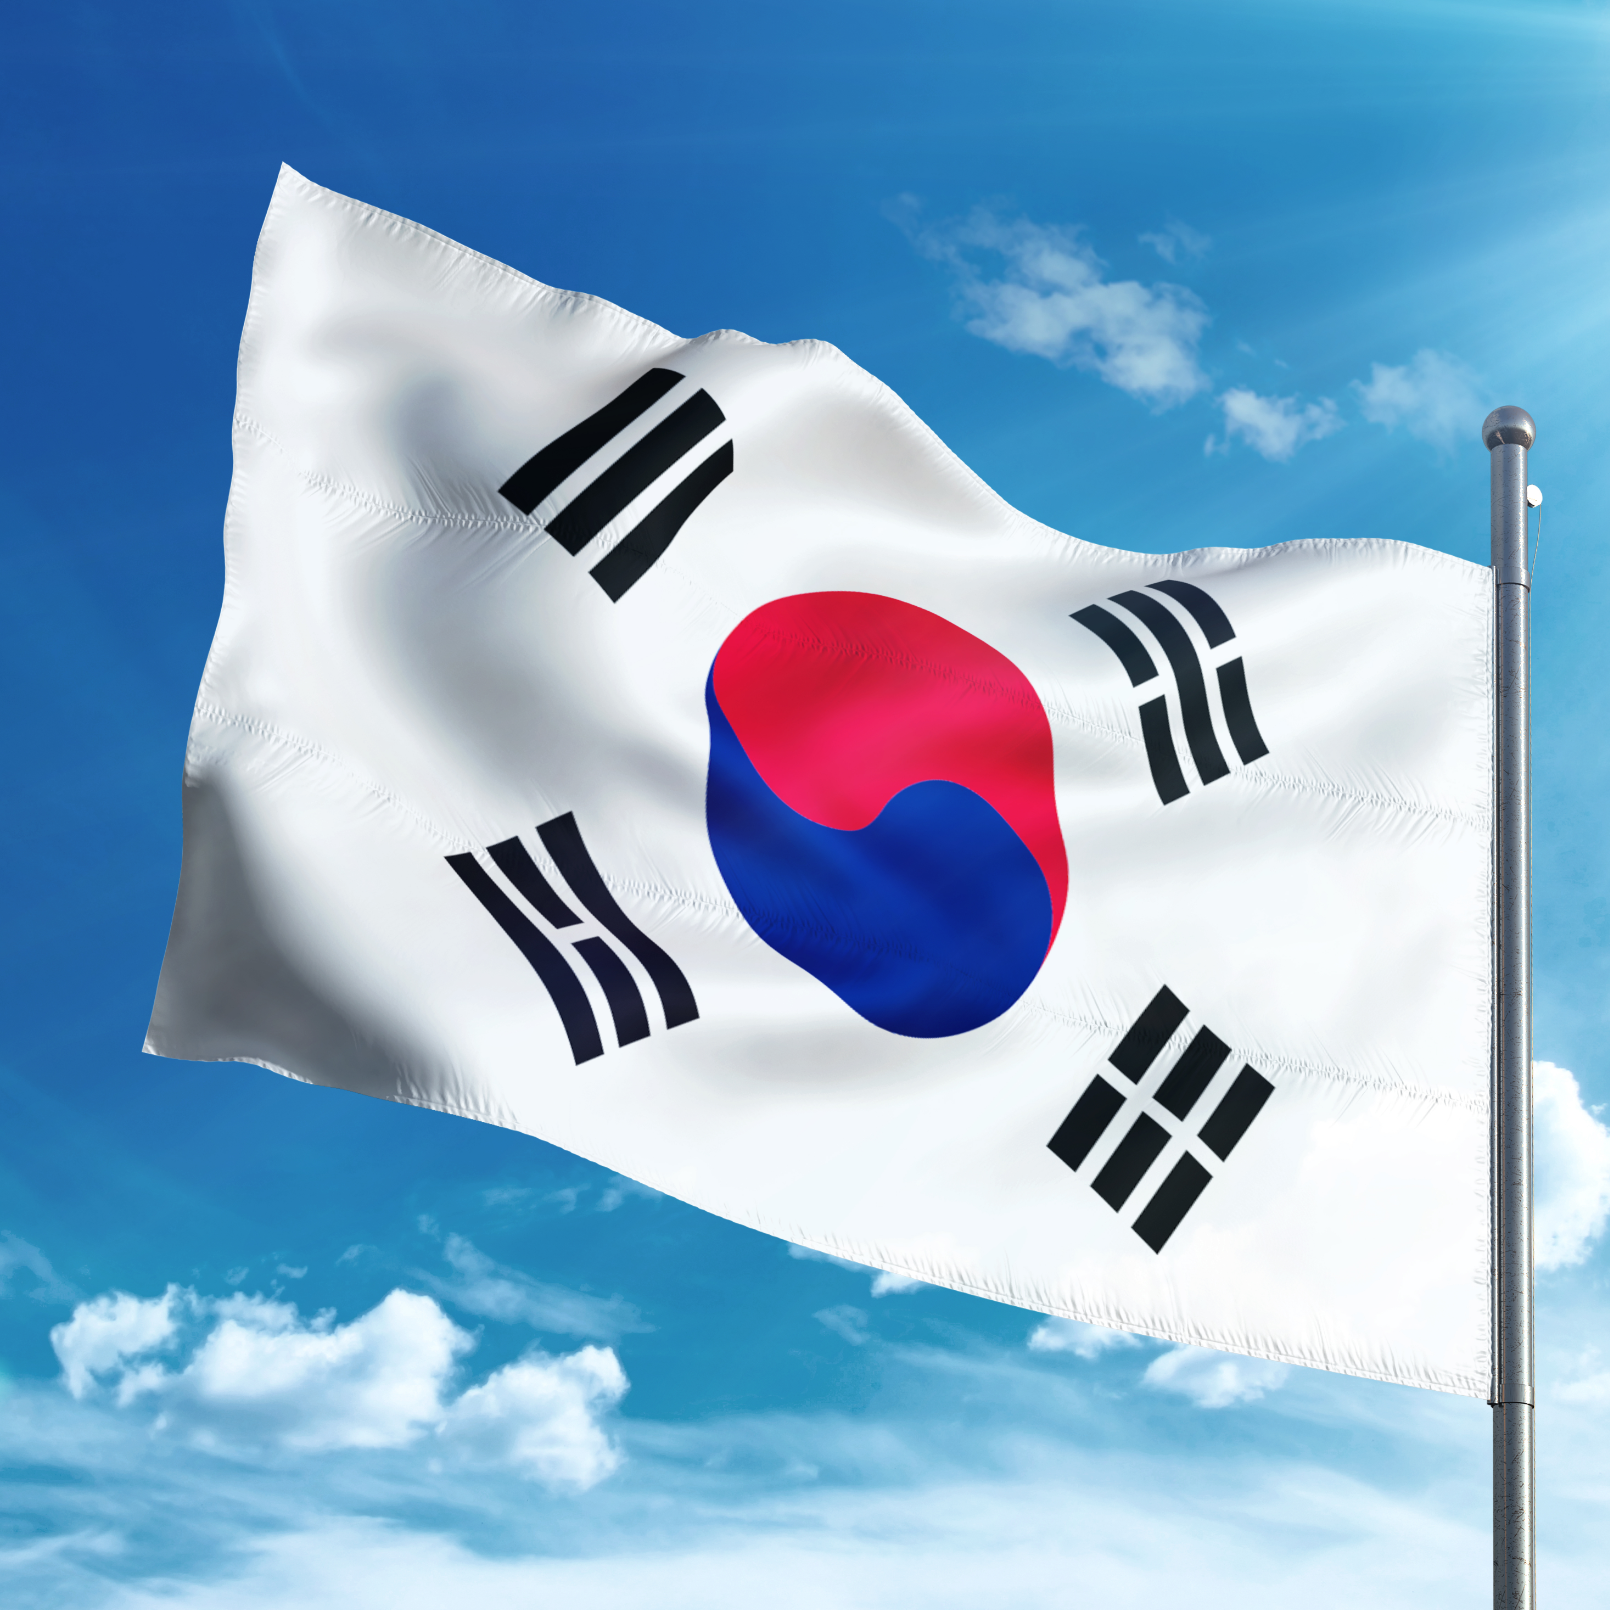 Crypto Still Tax Free in Korea but Regulators Have Set Timeframe for Taxation - Bitcoin News